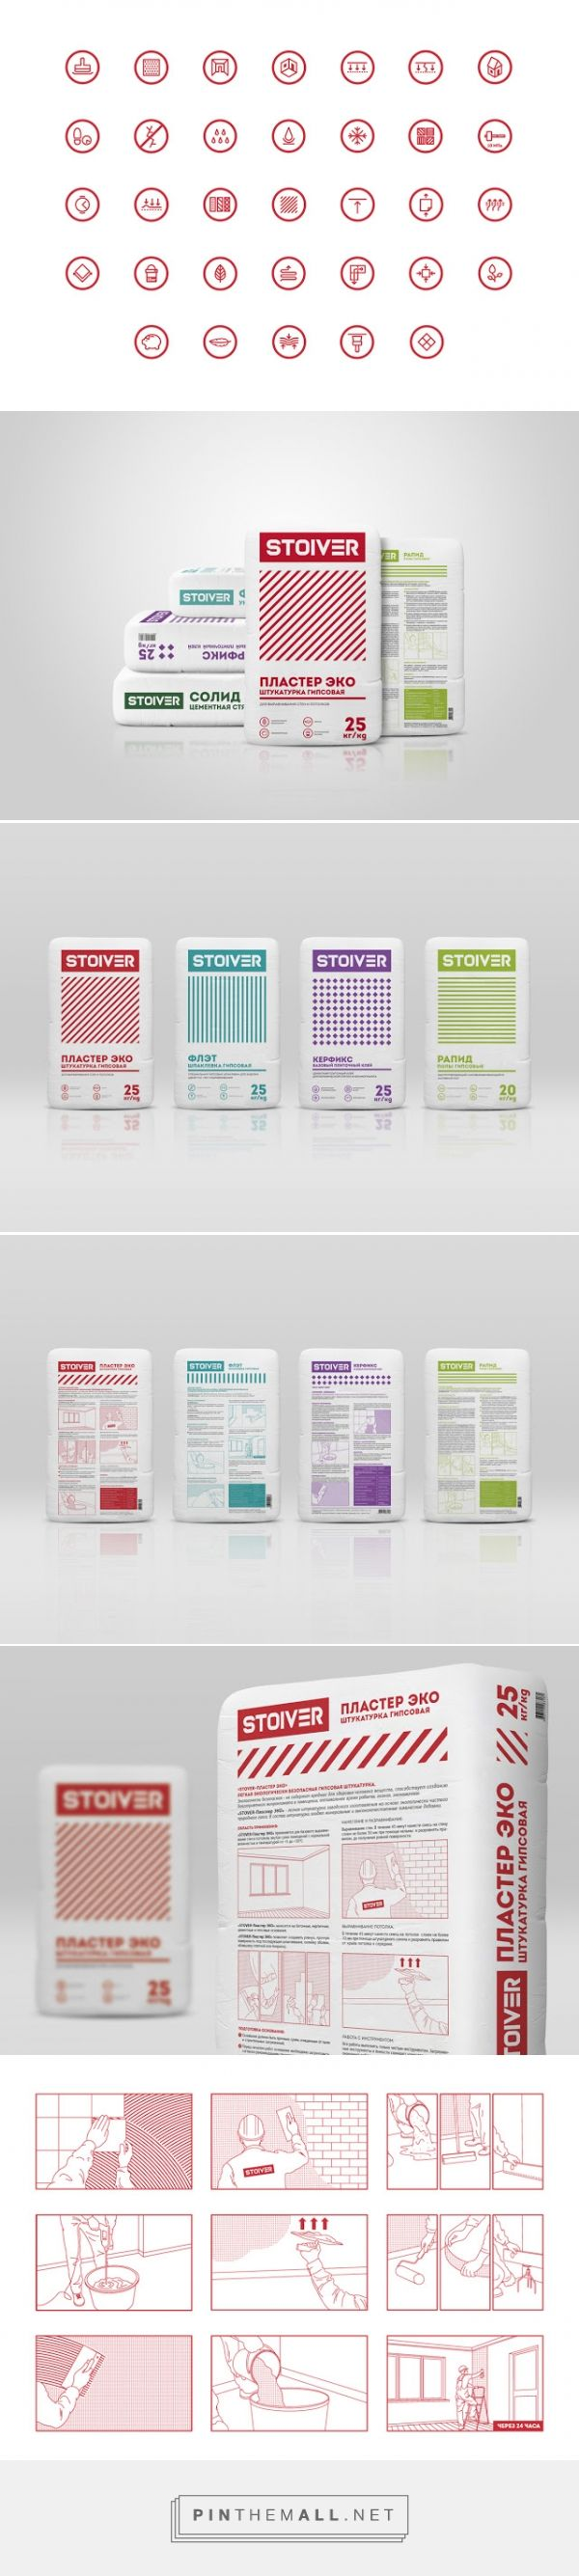 STOIVER building mixtures packaging designed by Vozduh advertising agency​ - http://www.packagingoftheworld.com/2015/12/stoiver.html